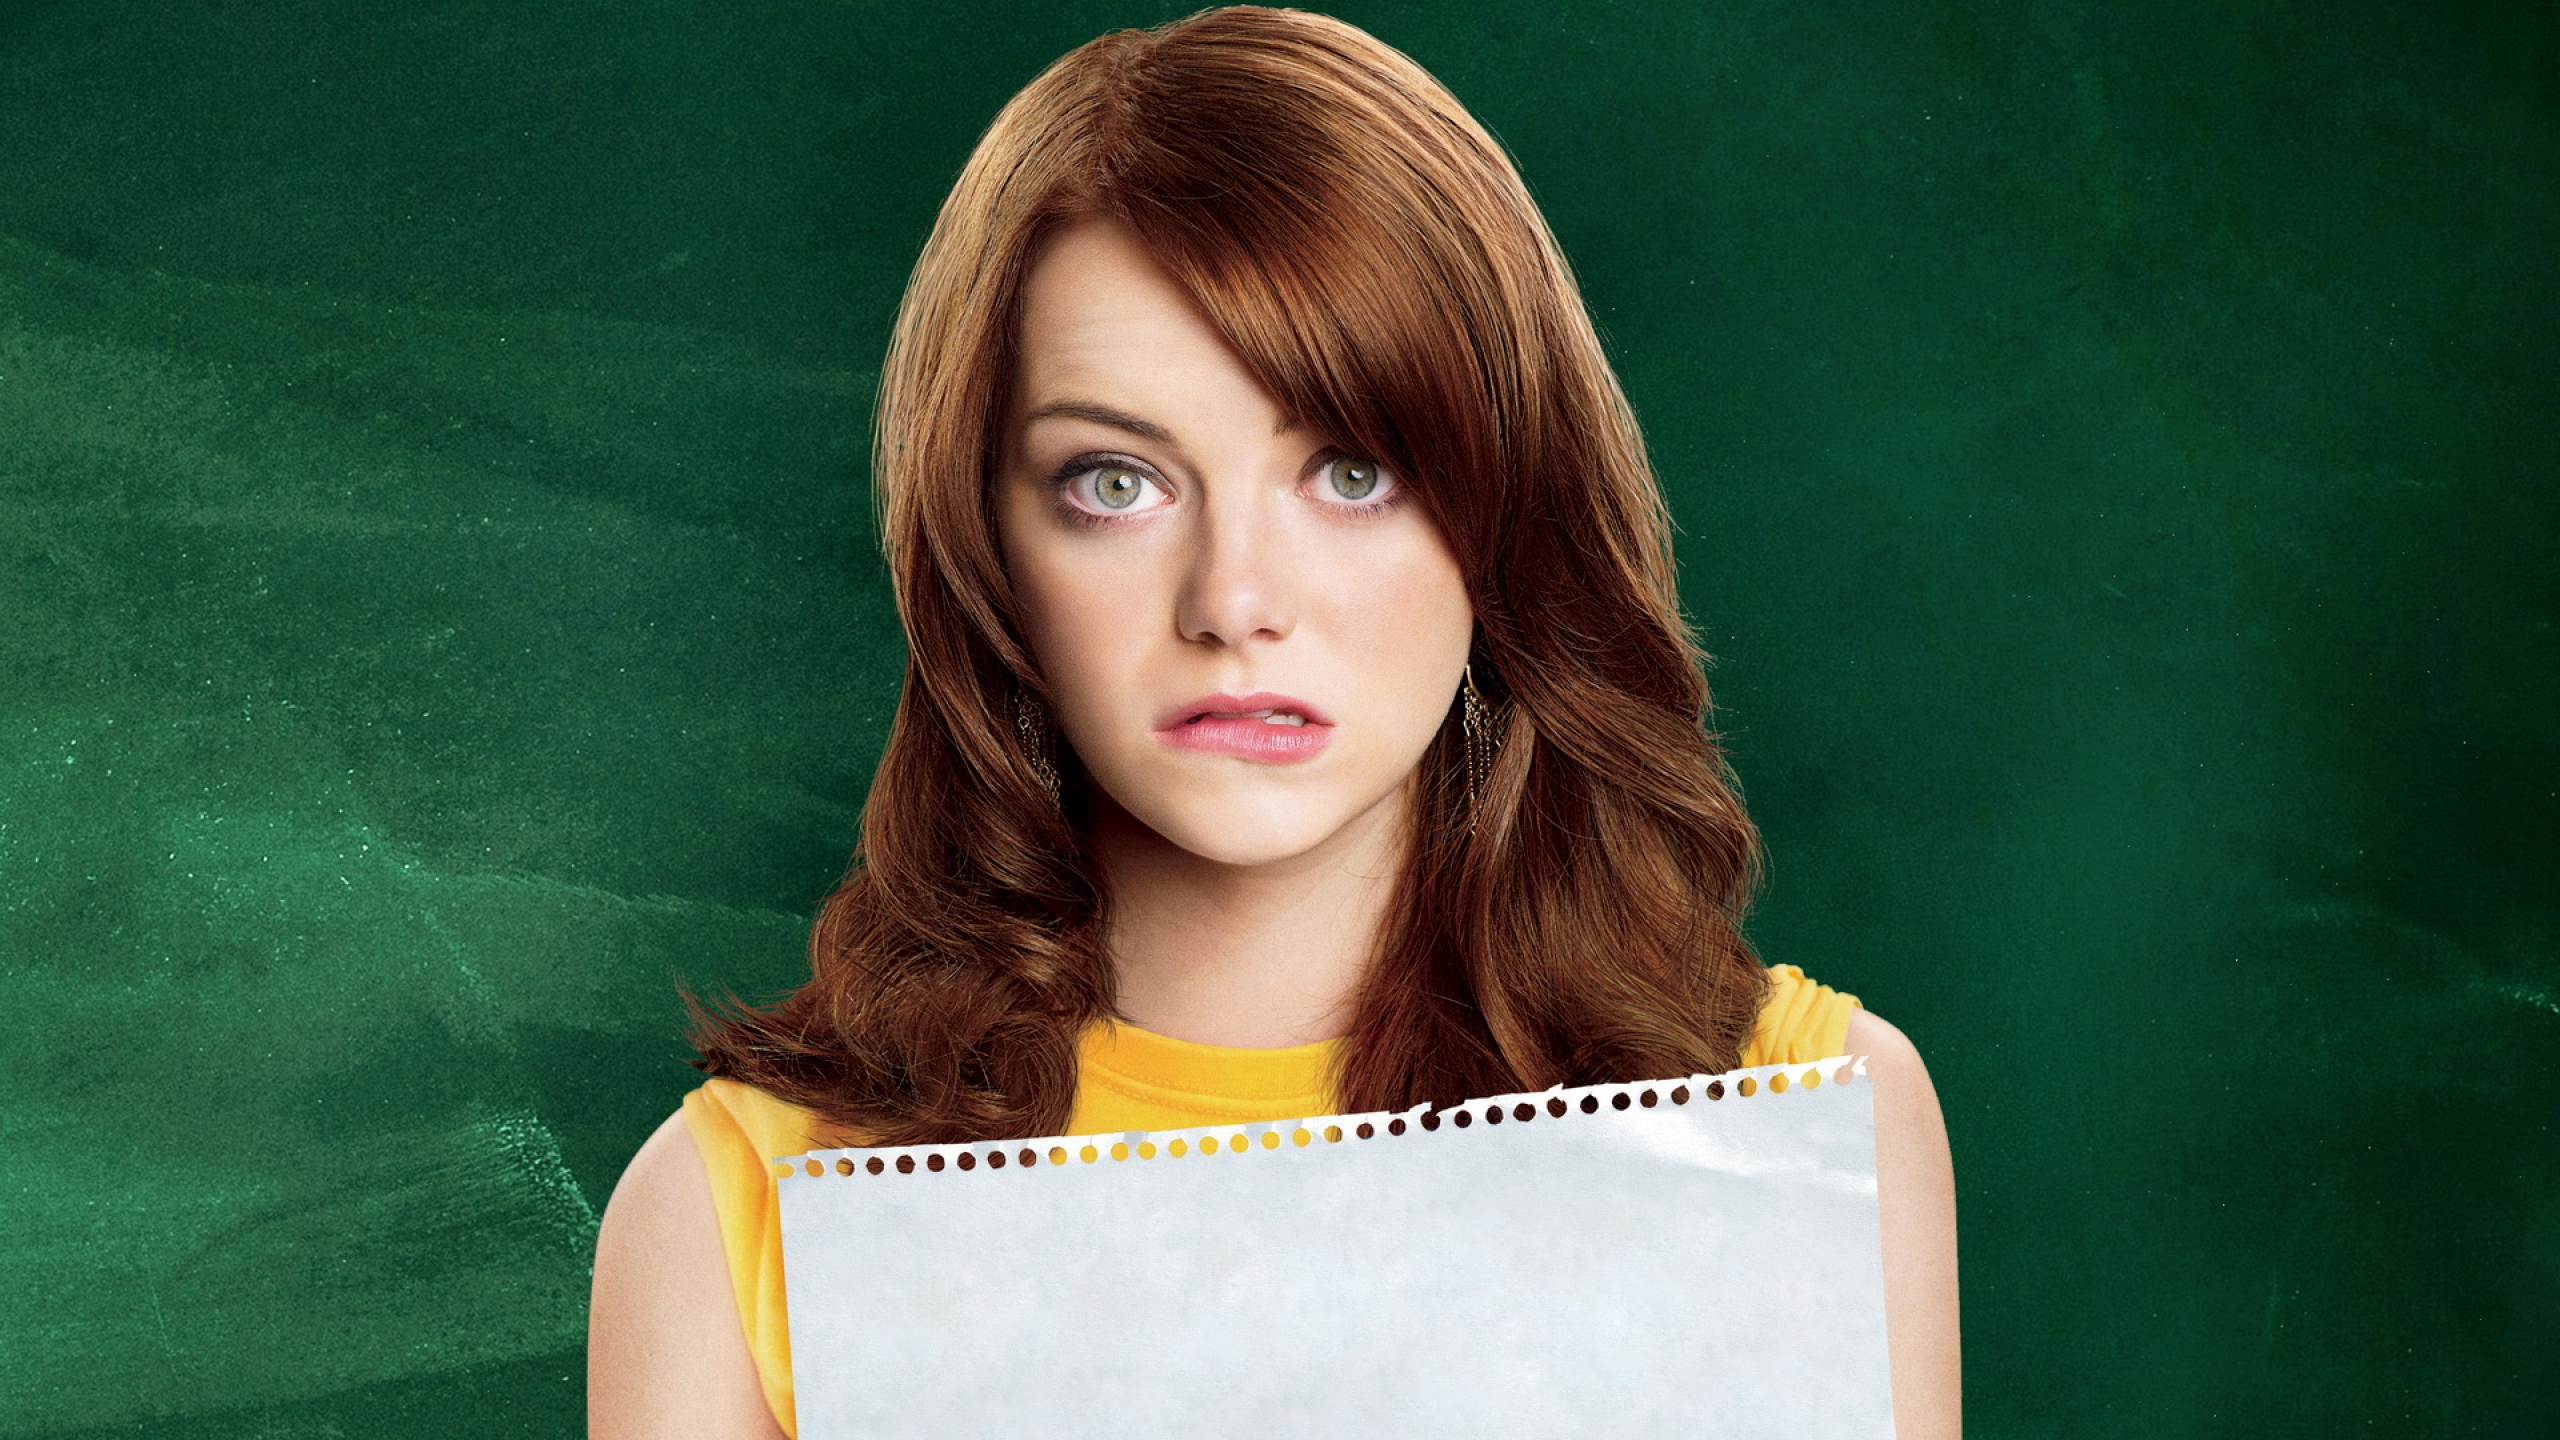 easy_a_emma_stone_olive_98376_2560x1440